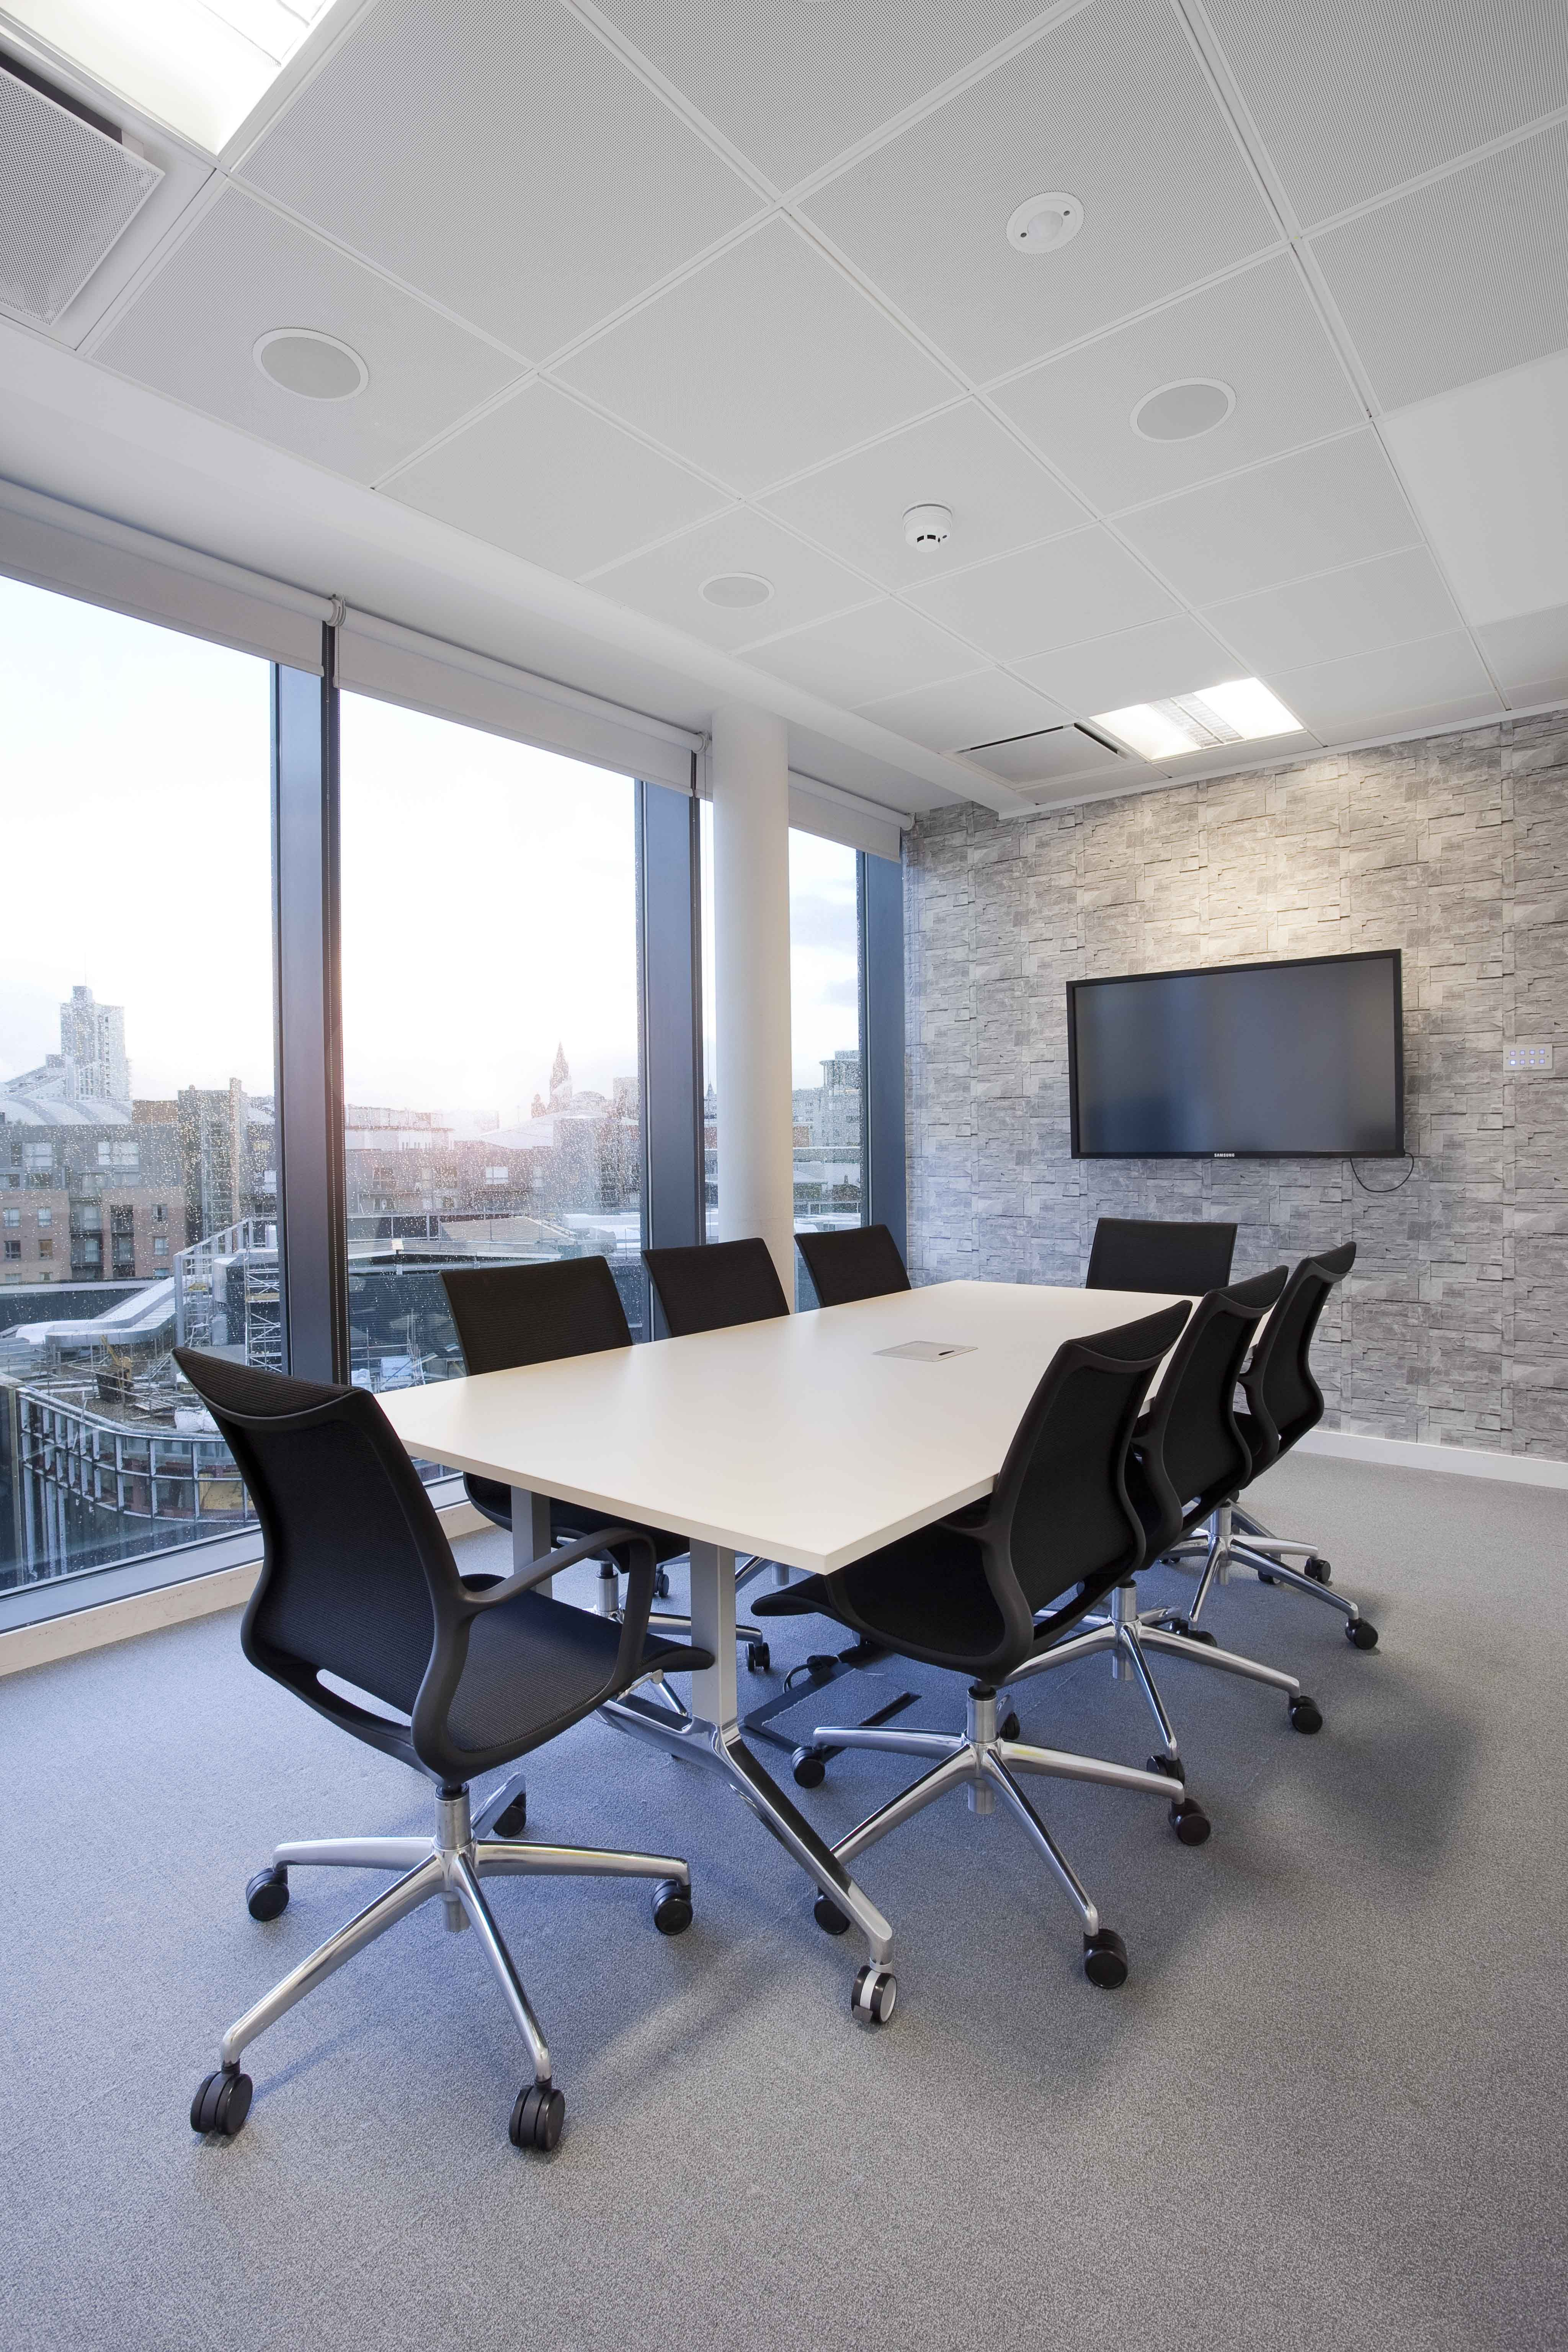 High Quality Meeting Rooms, Audio Visual, Office Design, Interior Design, Fit Out